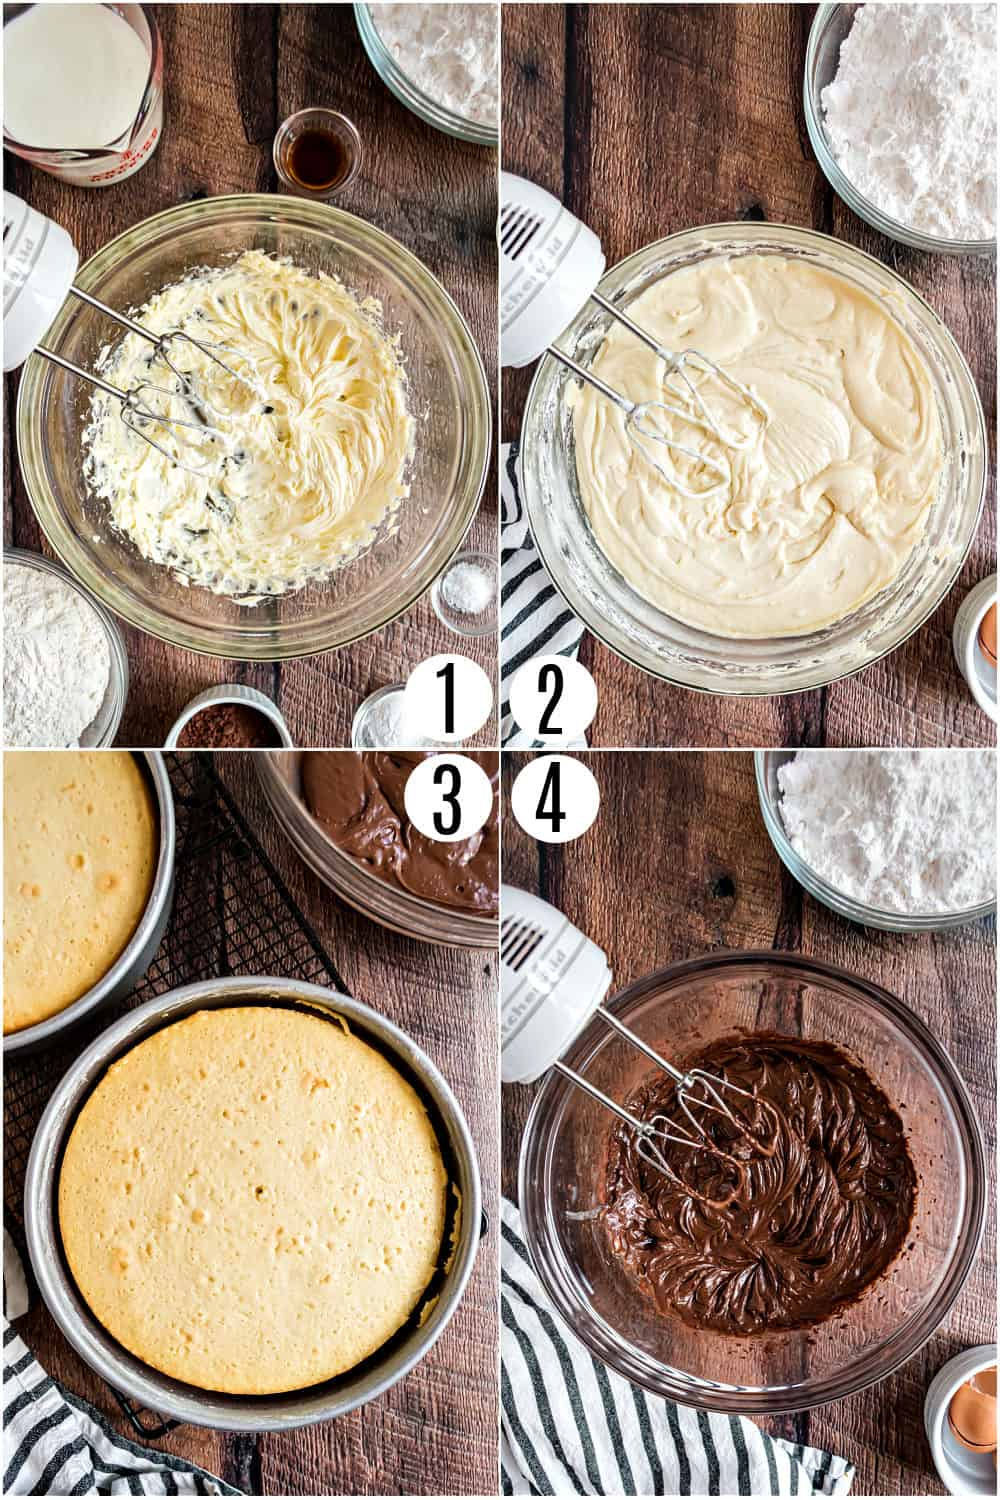 Step by step photos showing how to make yellow cake with fudge frosting.